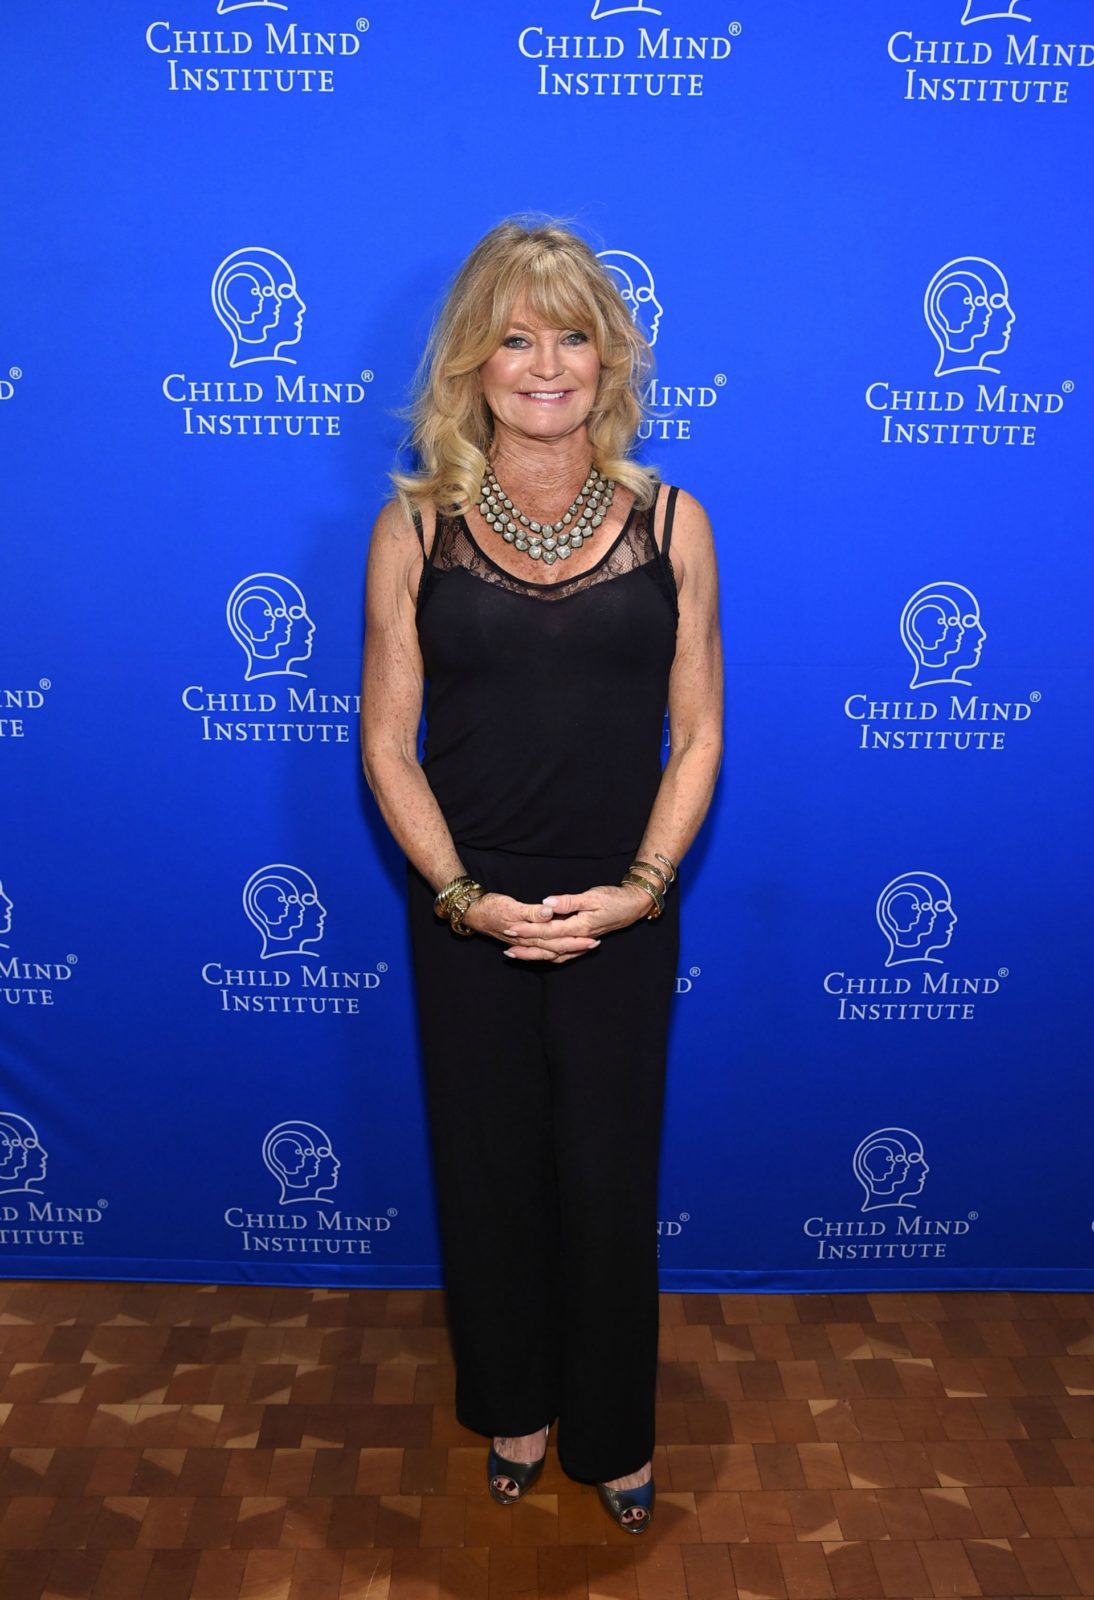 Goldie Hawn stunned in a stylish outfit when she attended the Child Mind Institute's 2019 Change Maker Awards earlier this week.